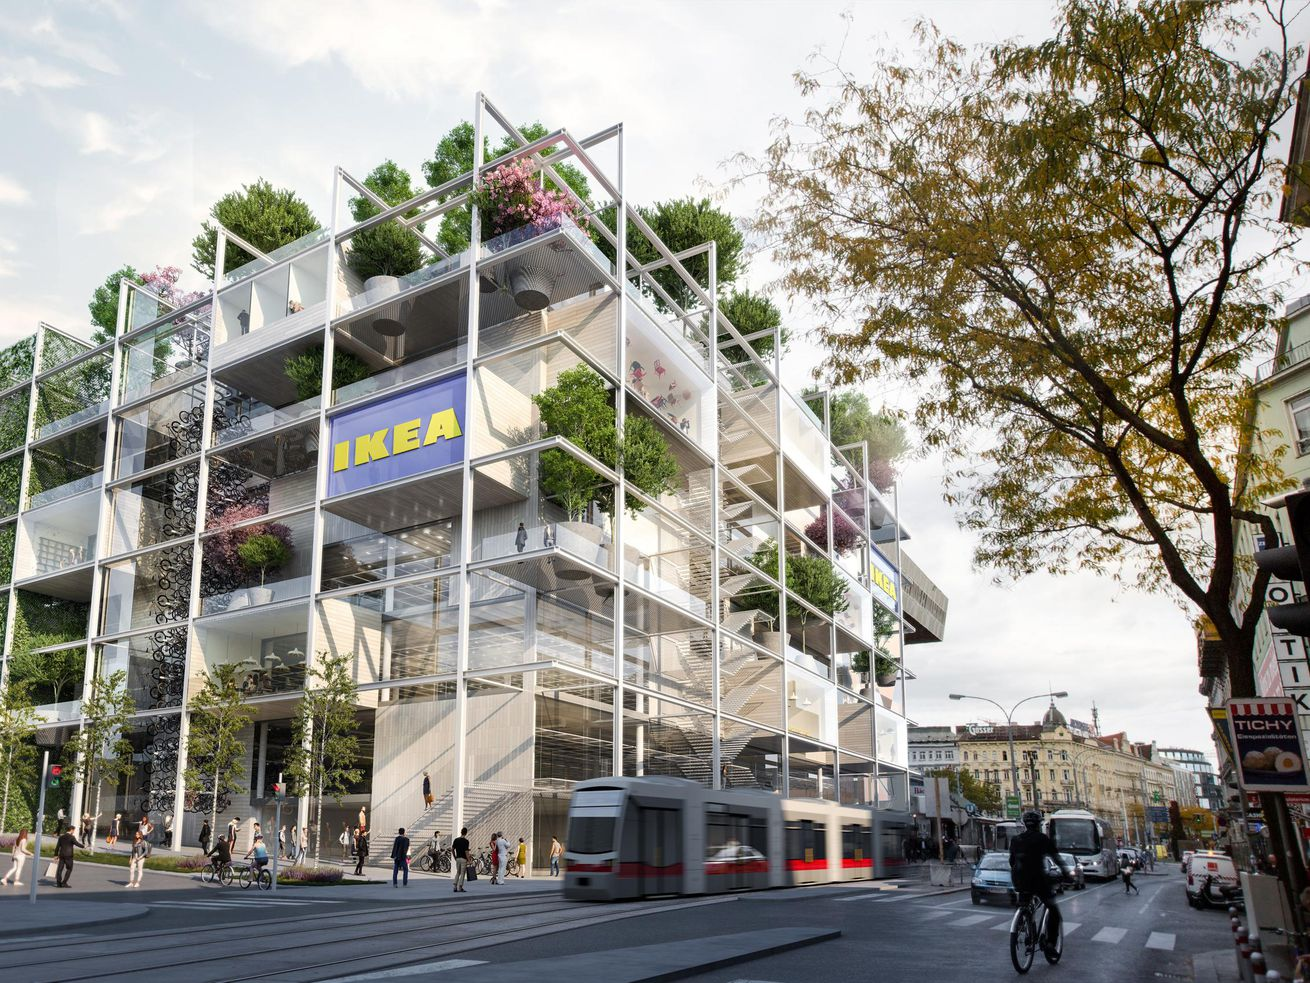 Ikea is building a city store with lots of trees and no parking